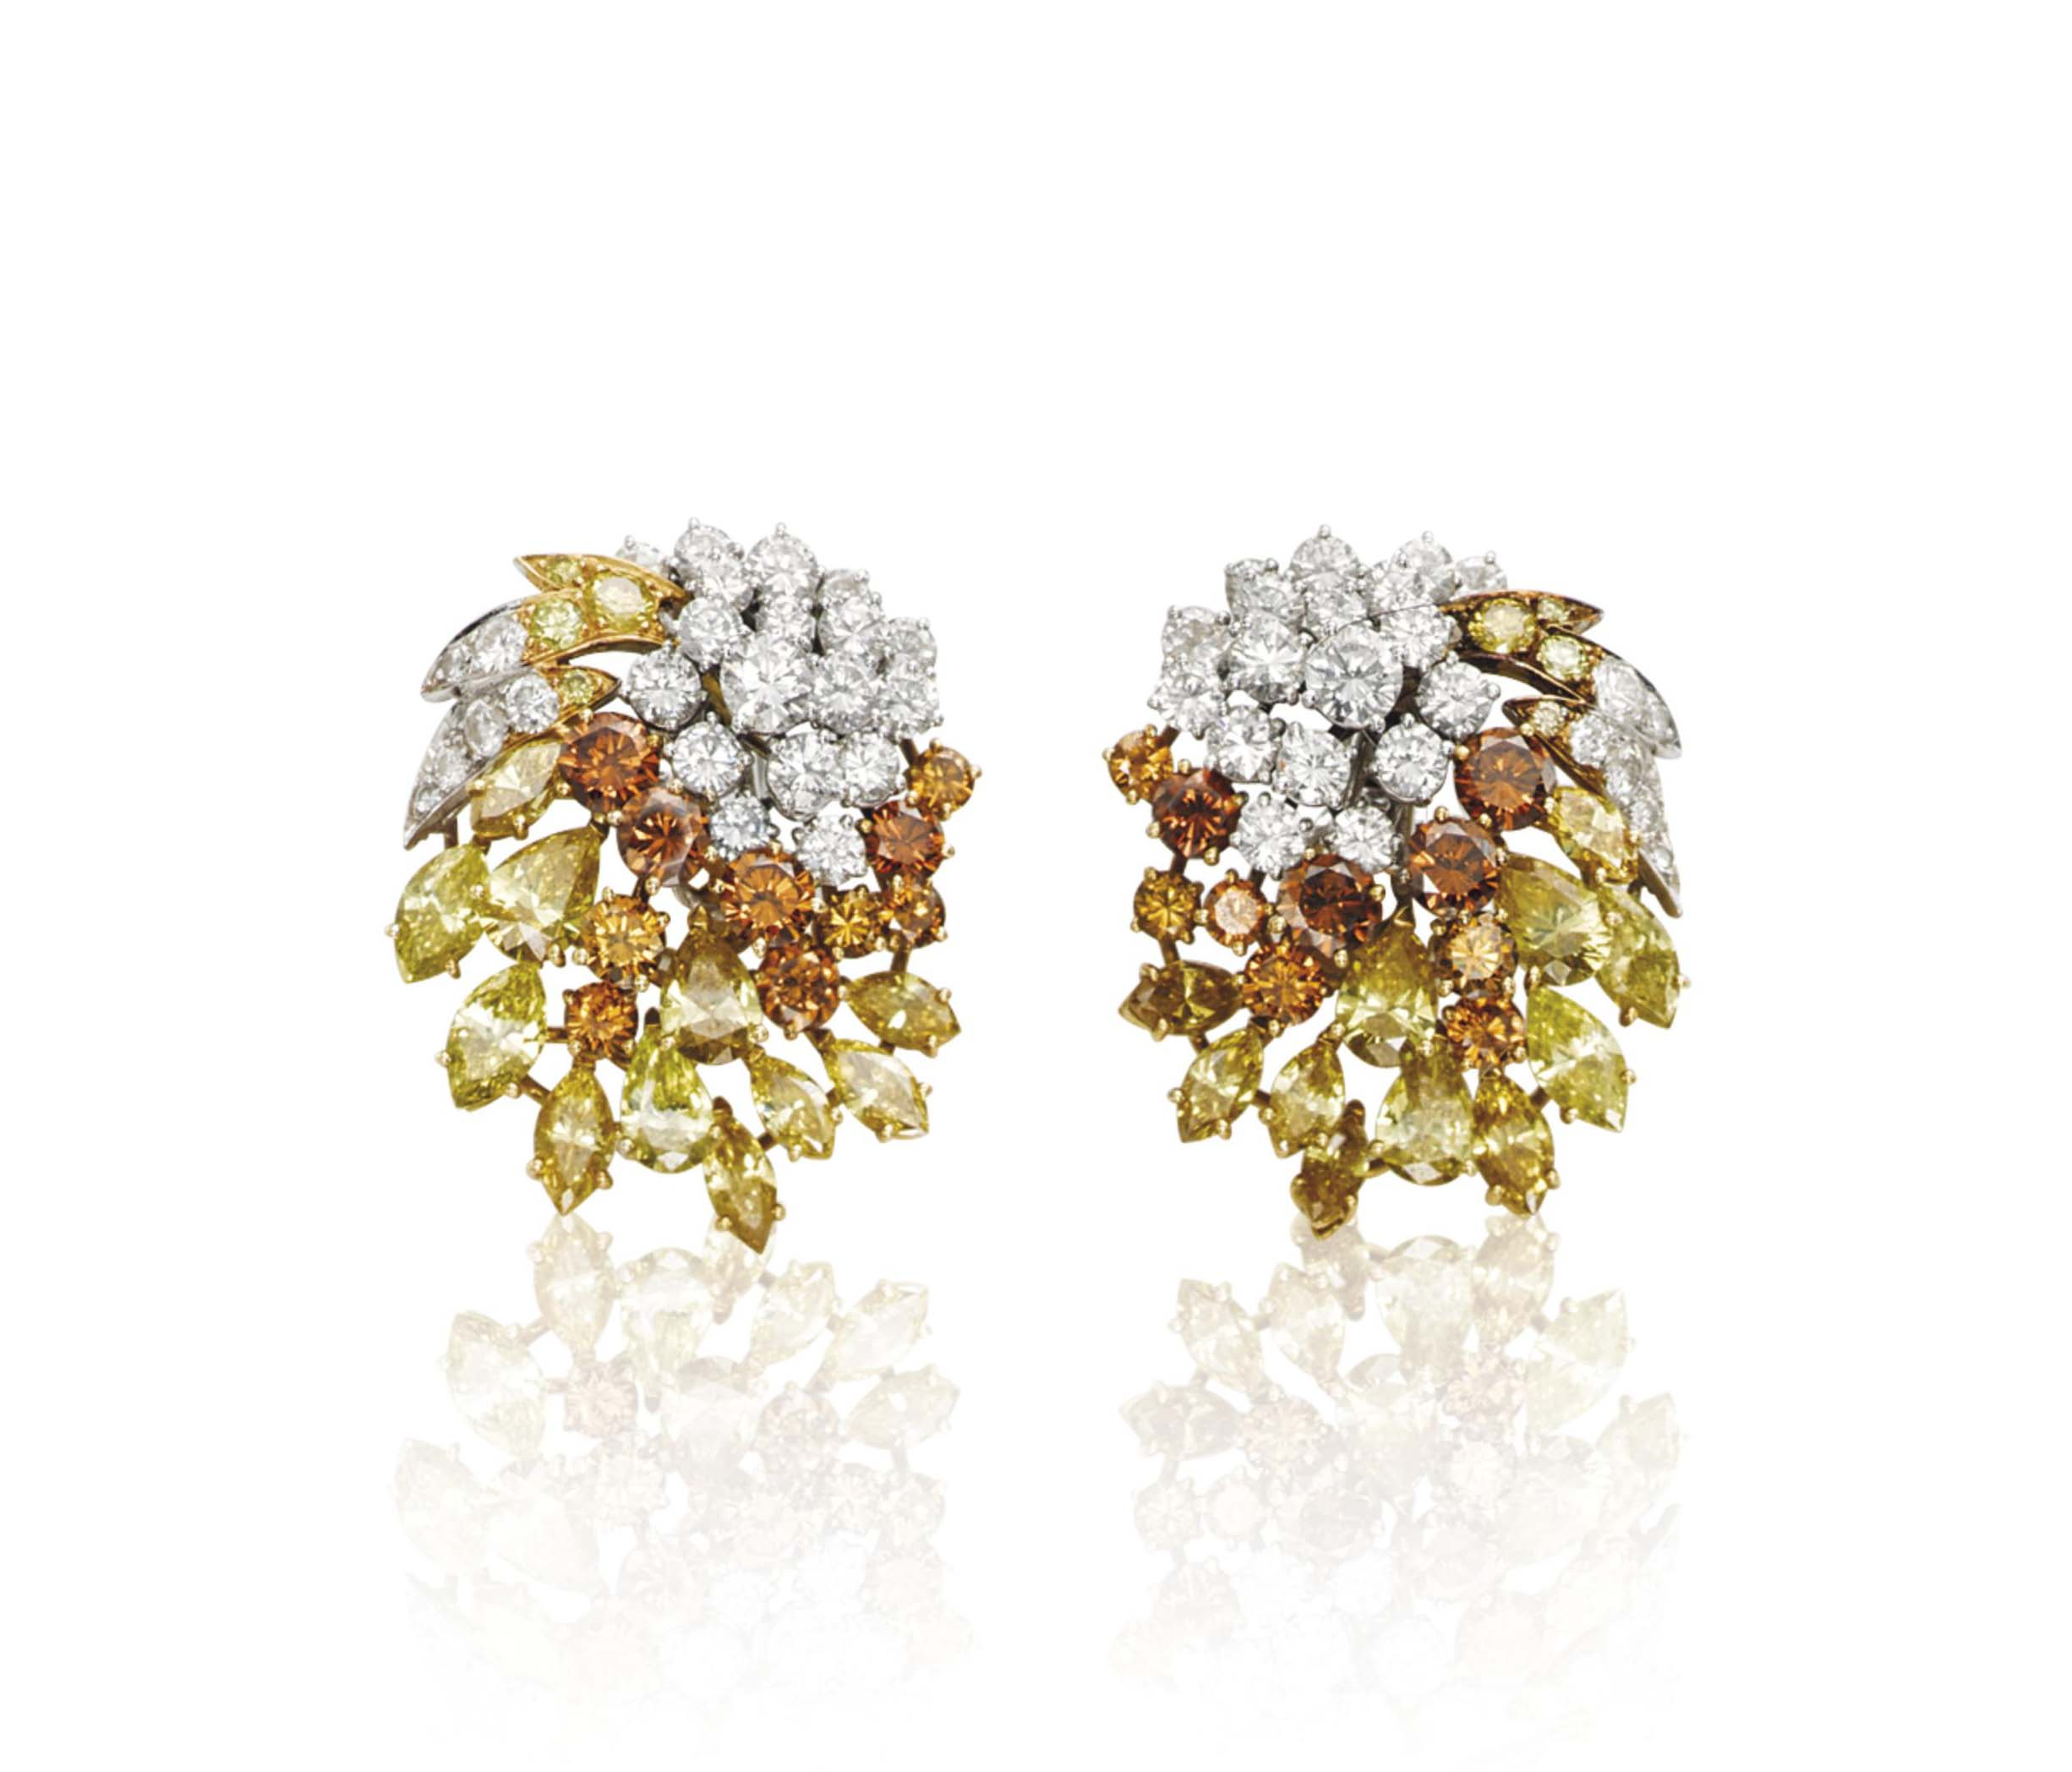 A PAIR OF DIAMOND AND COLOURED DIAMOND EARRINGS, BY MASSONI